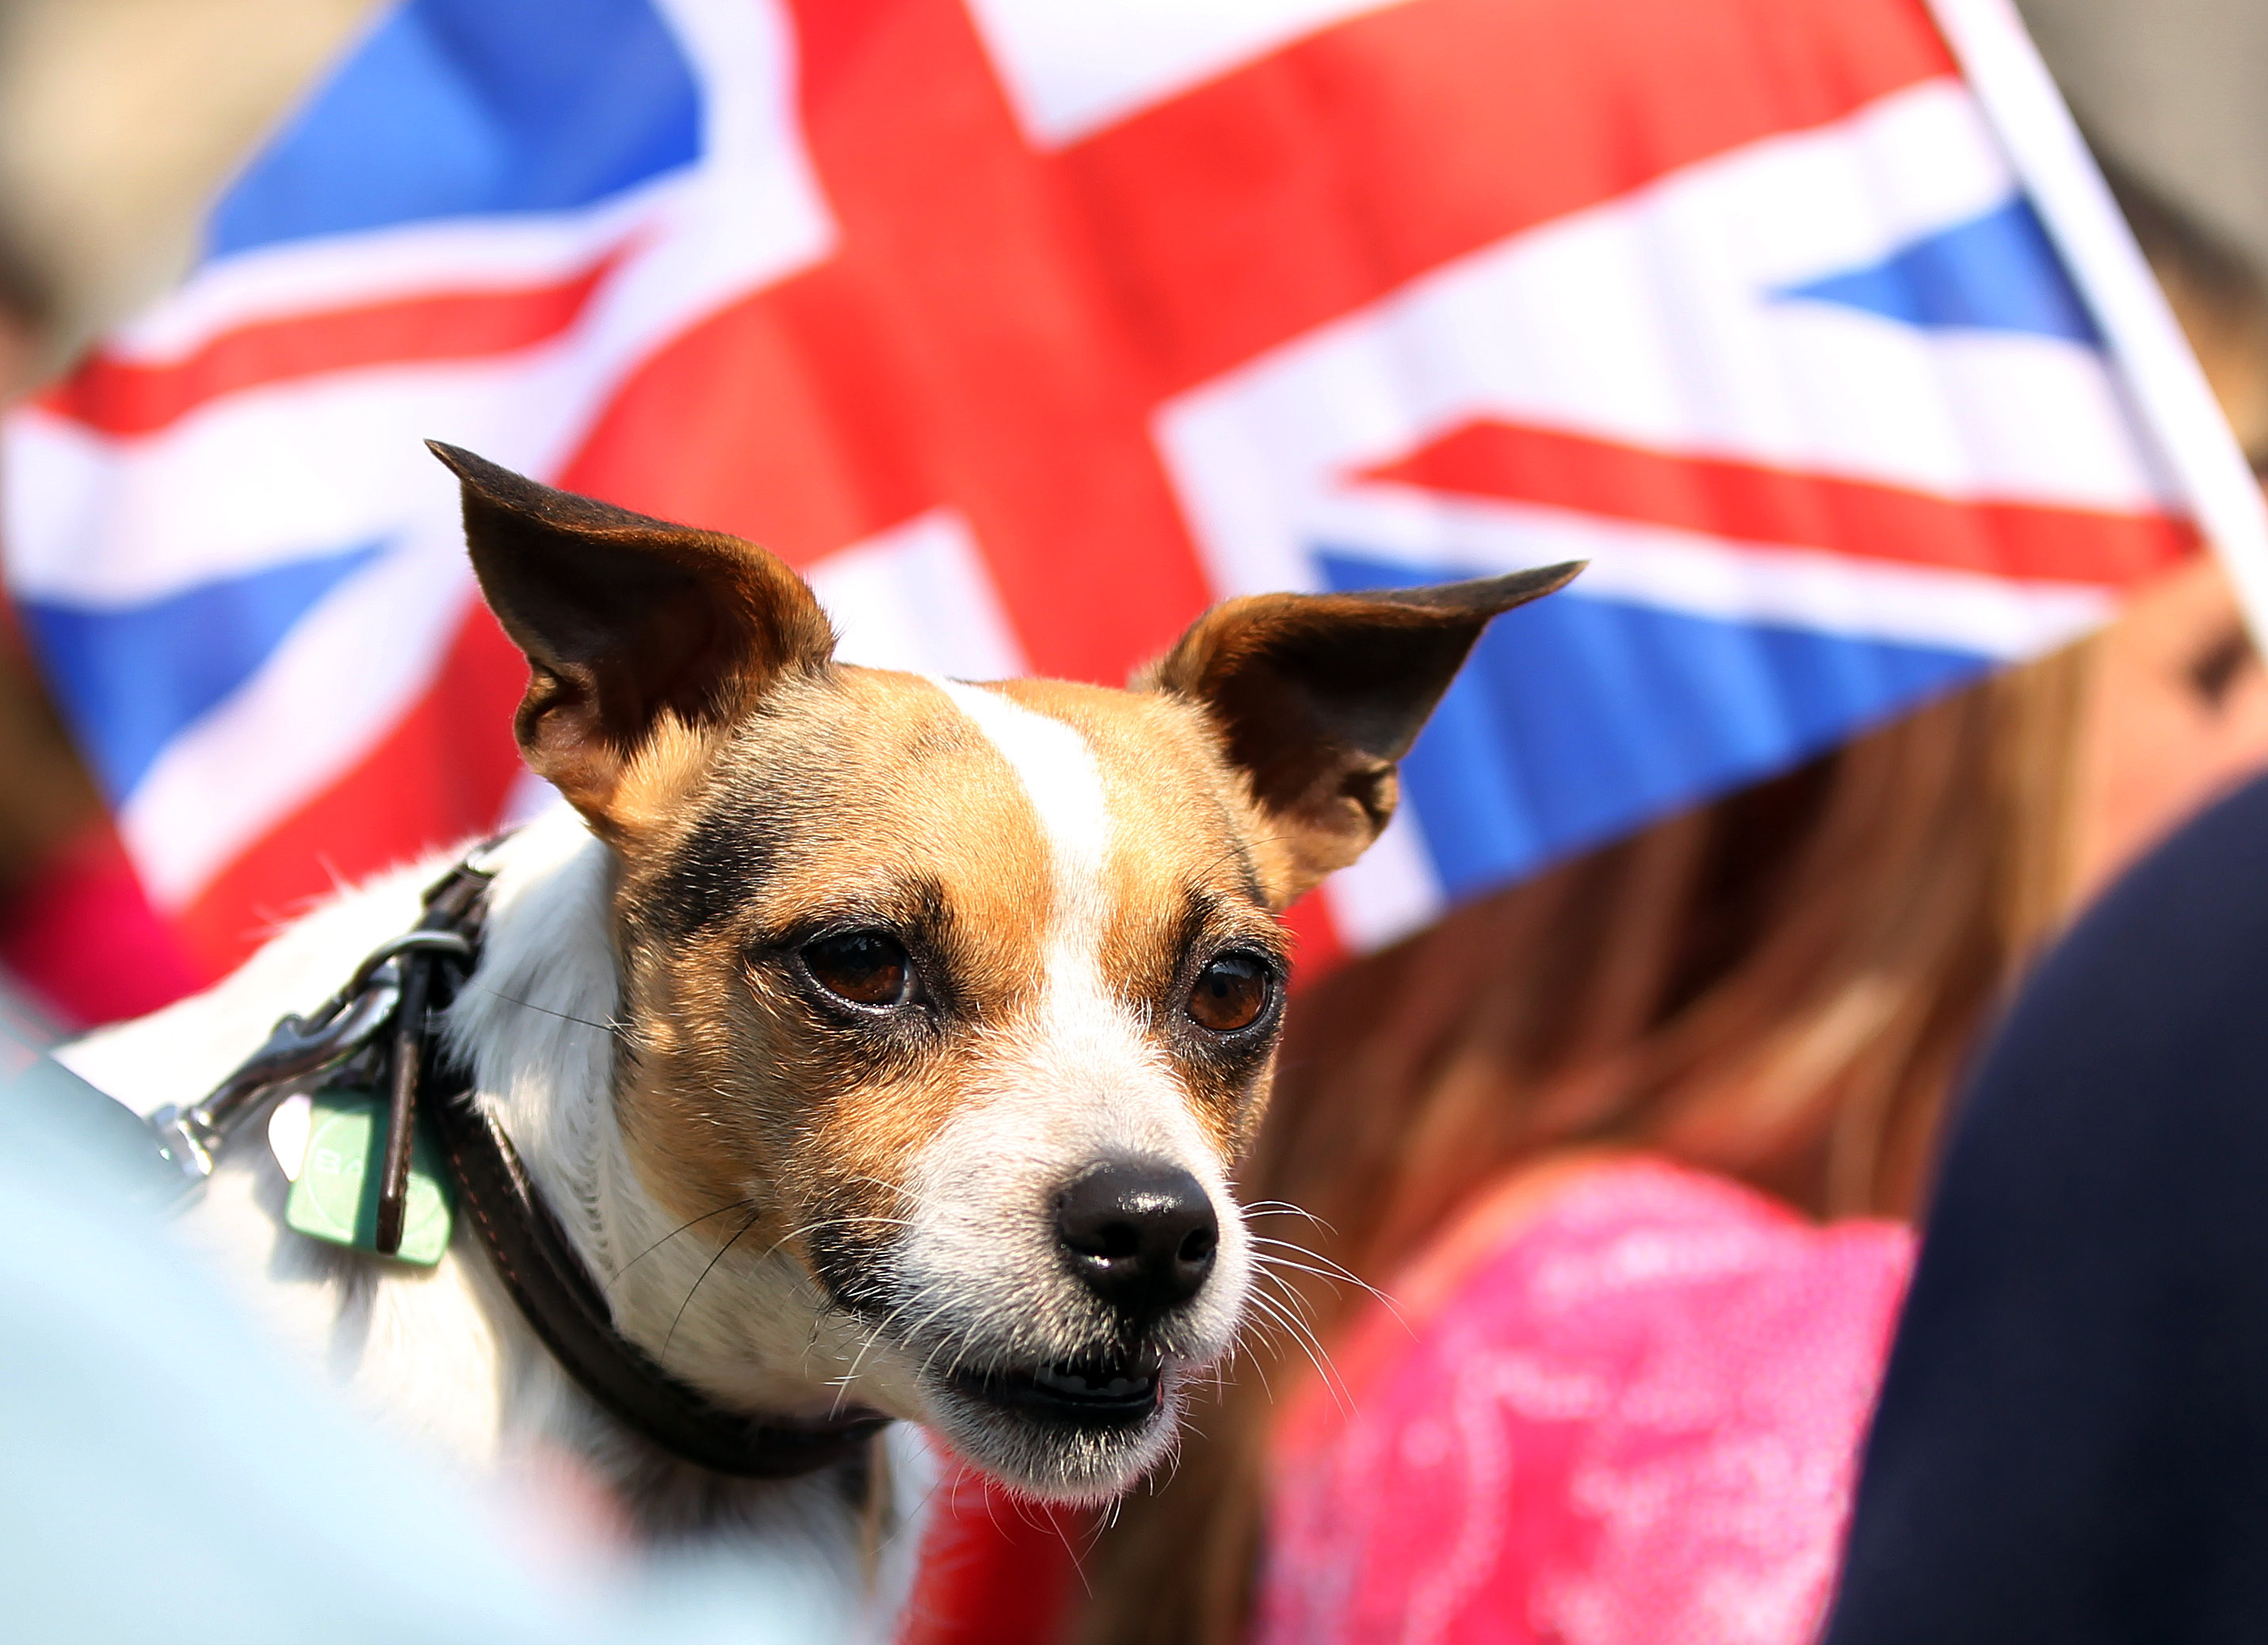 Representative picture of the breed Jack Russell terrier. (Photo by Ian MacNicol/Getty Images)